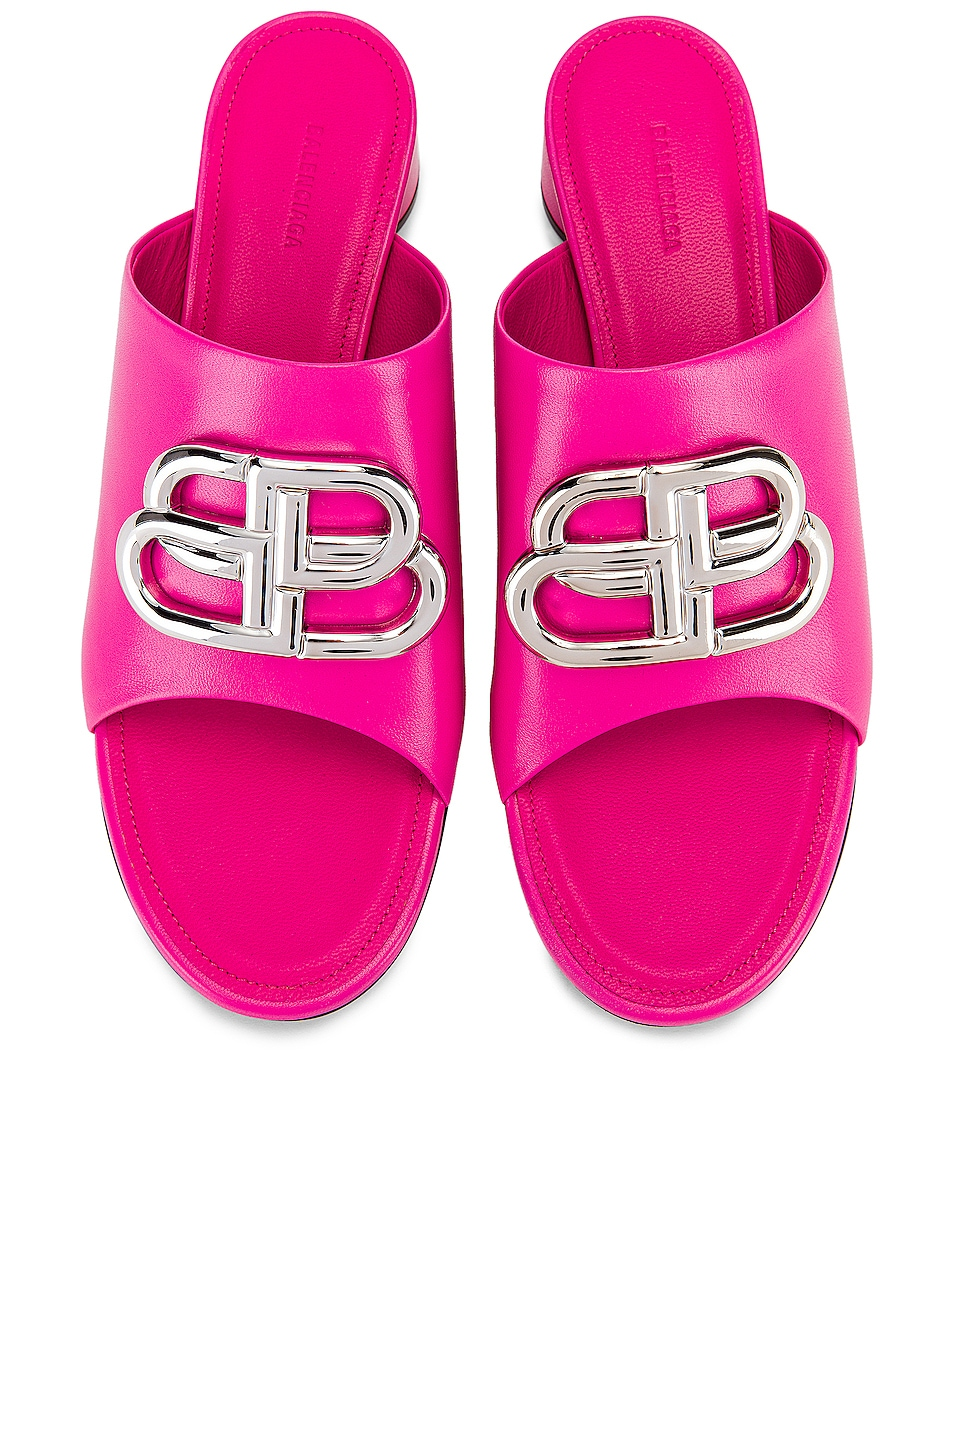 Image 1 of Balenciaga Oval BB Sandals in Pink & Nickel